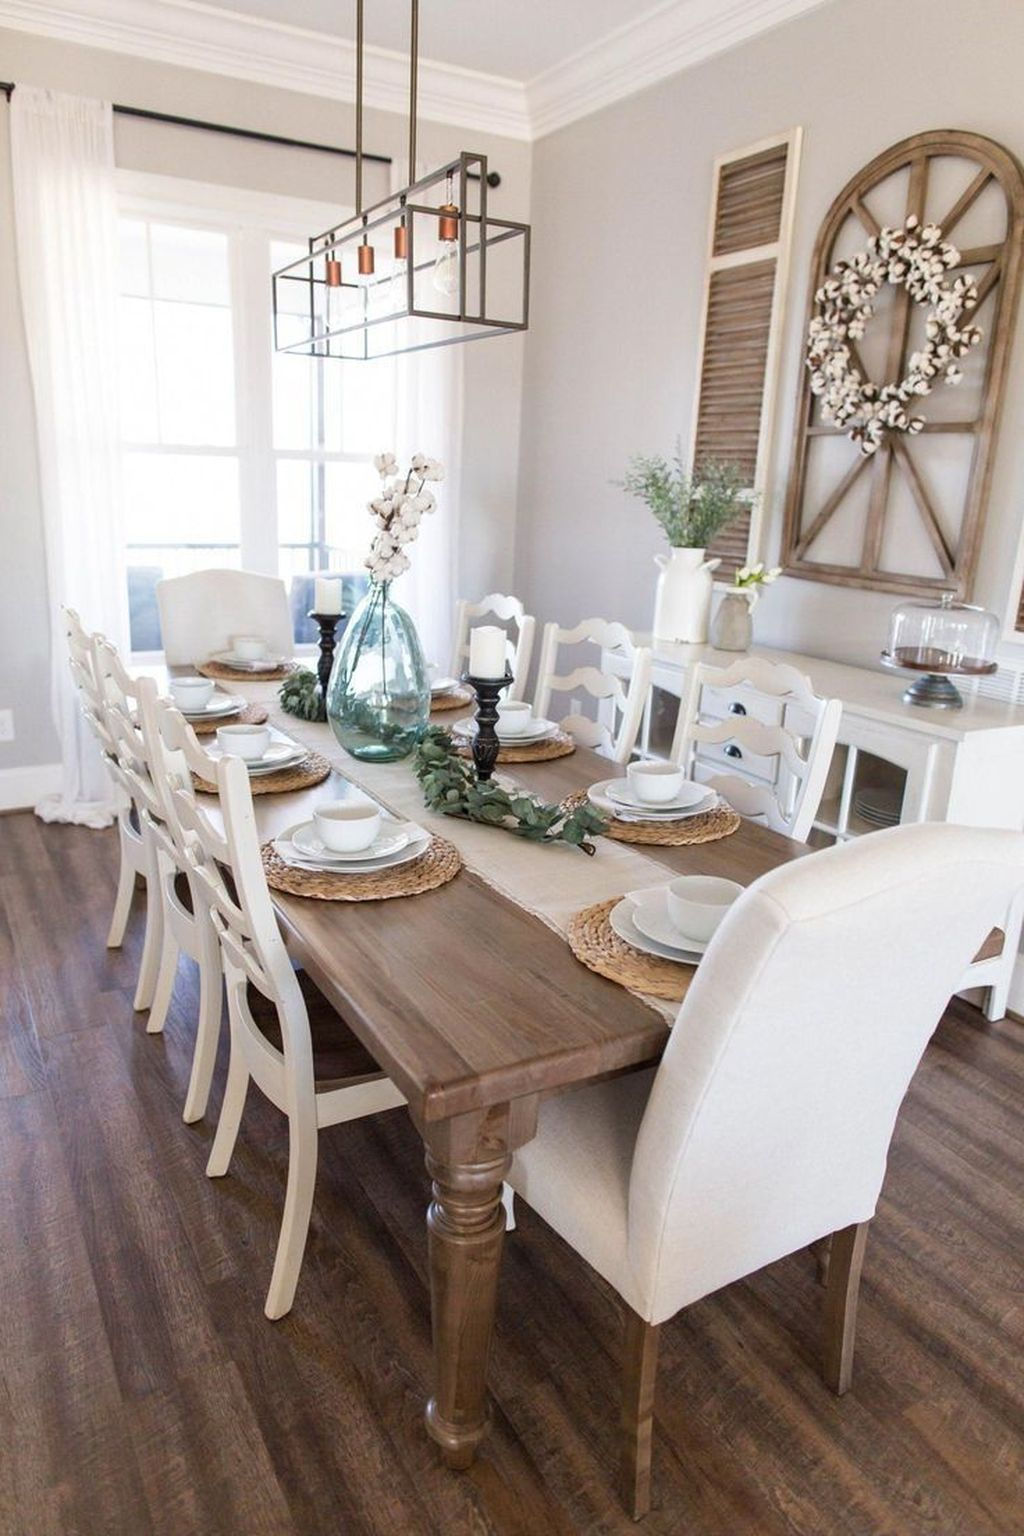 26 Magnificient Diy Spring Farmhouse Decorating Ideas To Try Right Now Dining Room Small Farmhouse Dining Room Table Dining Room Table Set Spring ideas dinning room